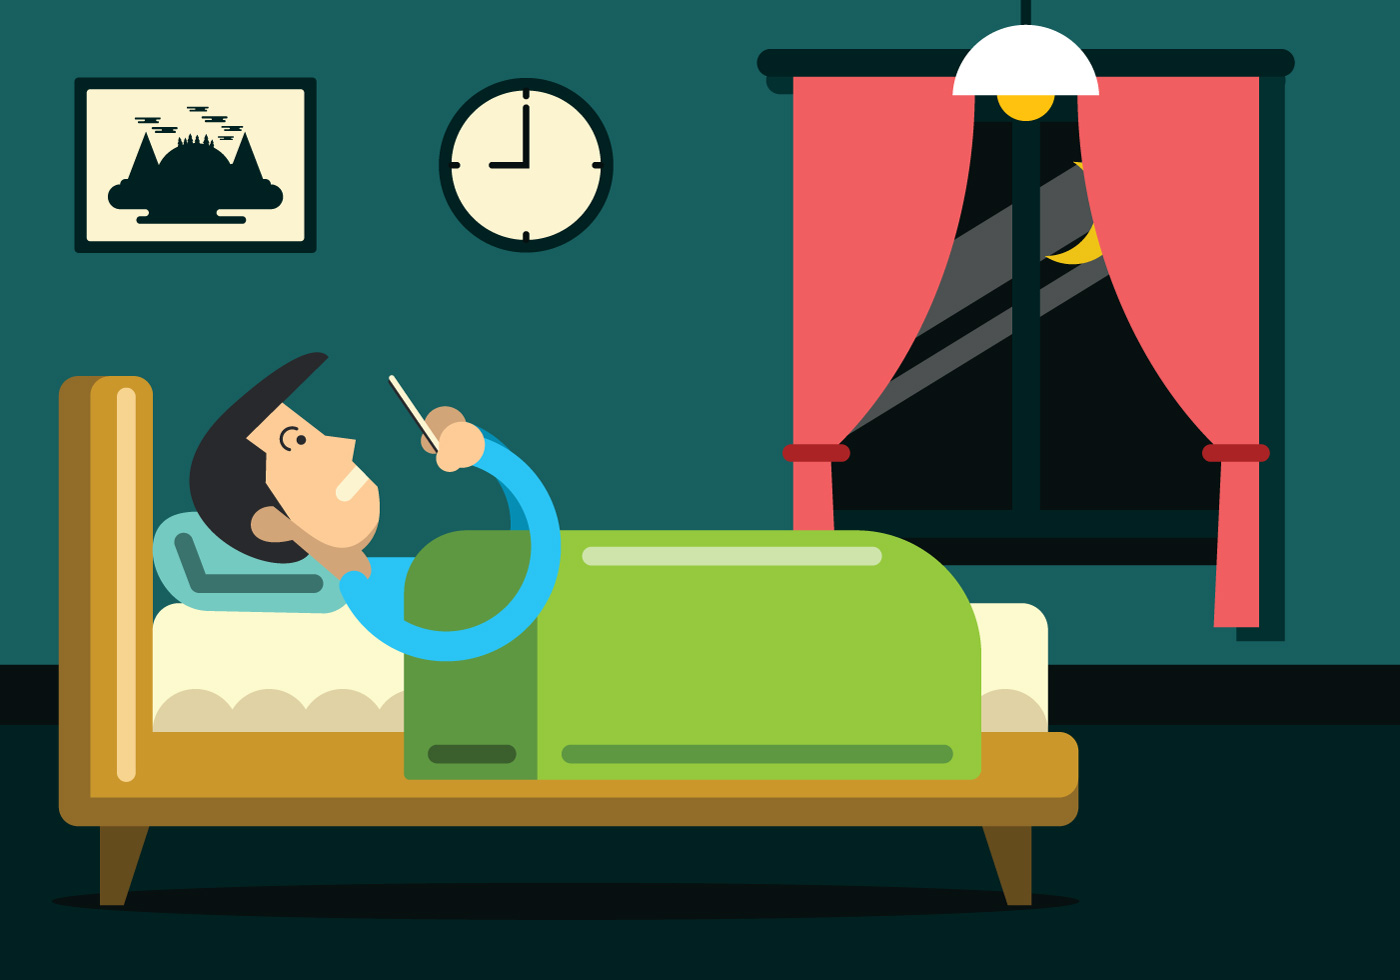 Man On A Phone In Bed Vector Download Free Vector Art